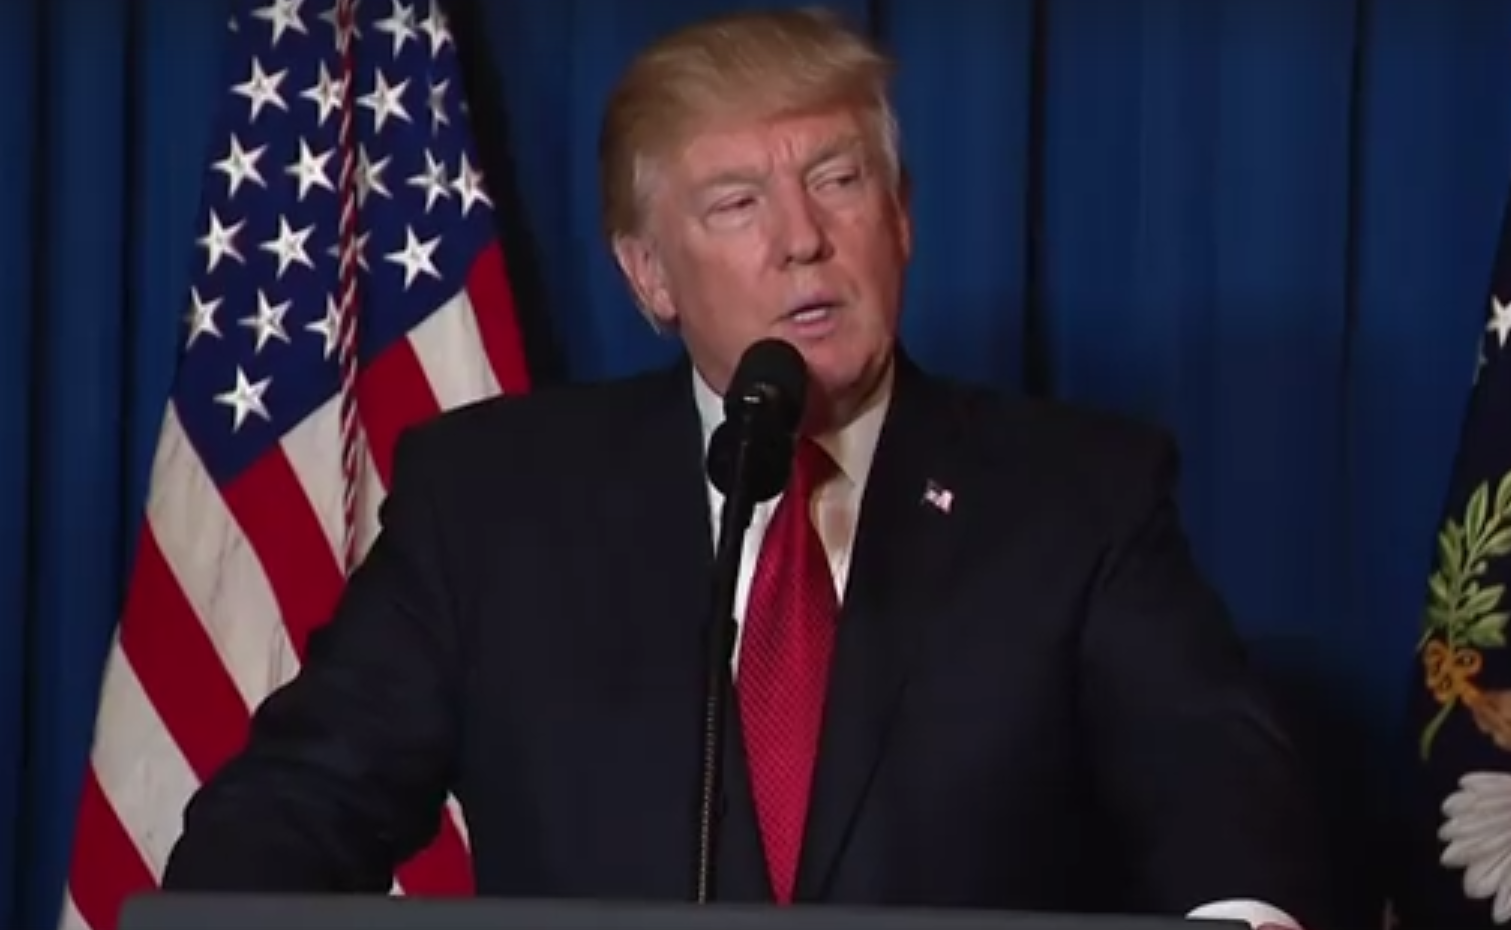 Trump: I Didn't Say 'S***hole Nations' Whole Thing 'Made Up' By Democrats